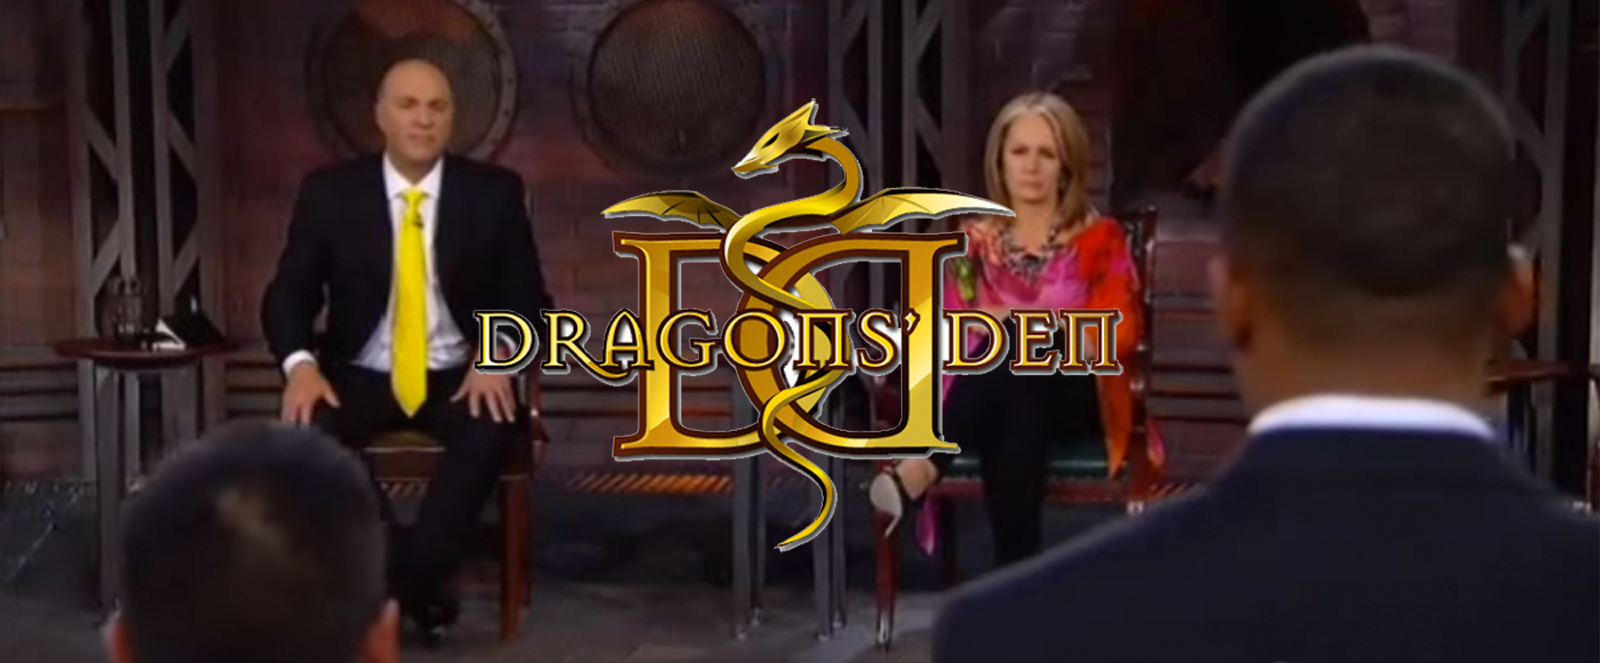 Dram Innovations on Dragon's Den